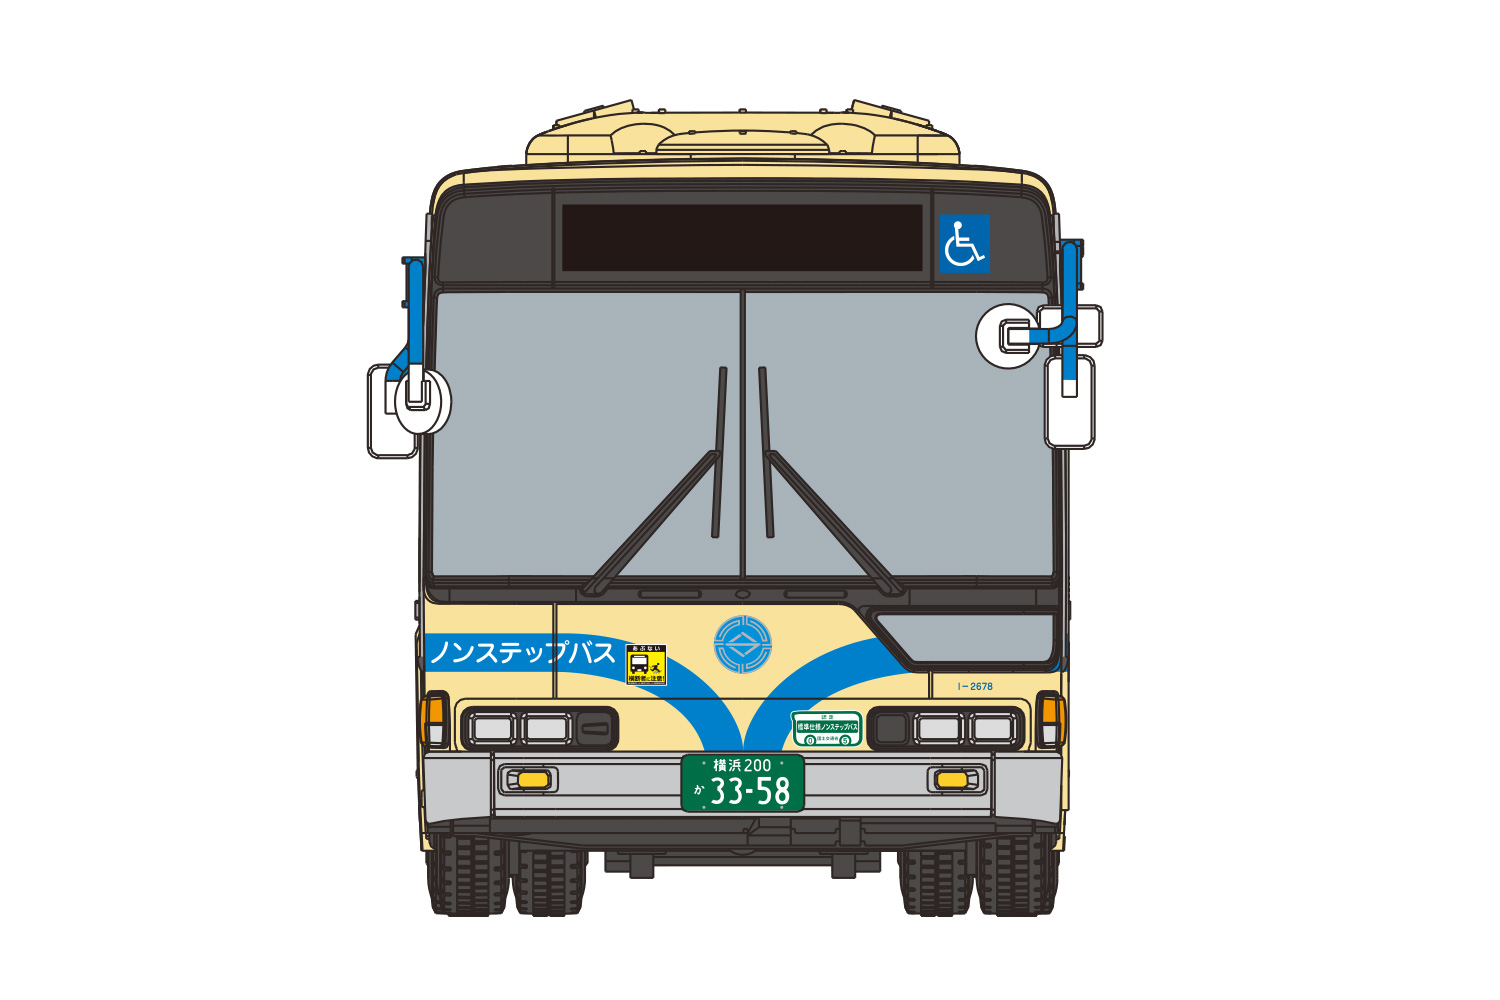 Aoshima 1/80 Mitsubishi Fuso Aero Star MP37 Yokohama City Bus